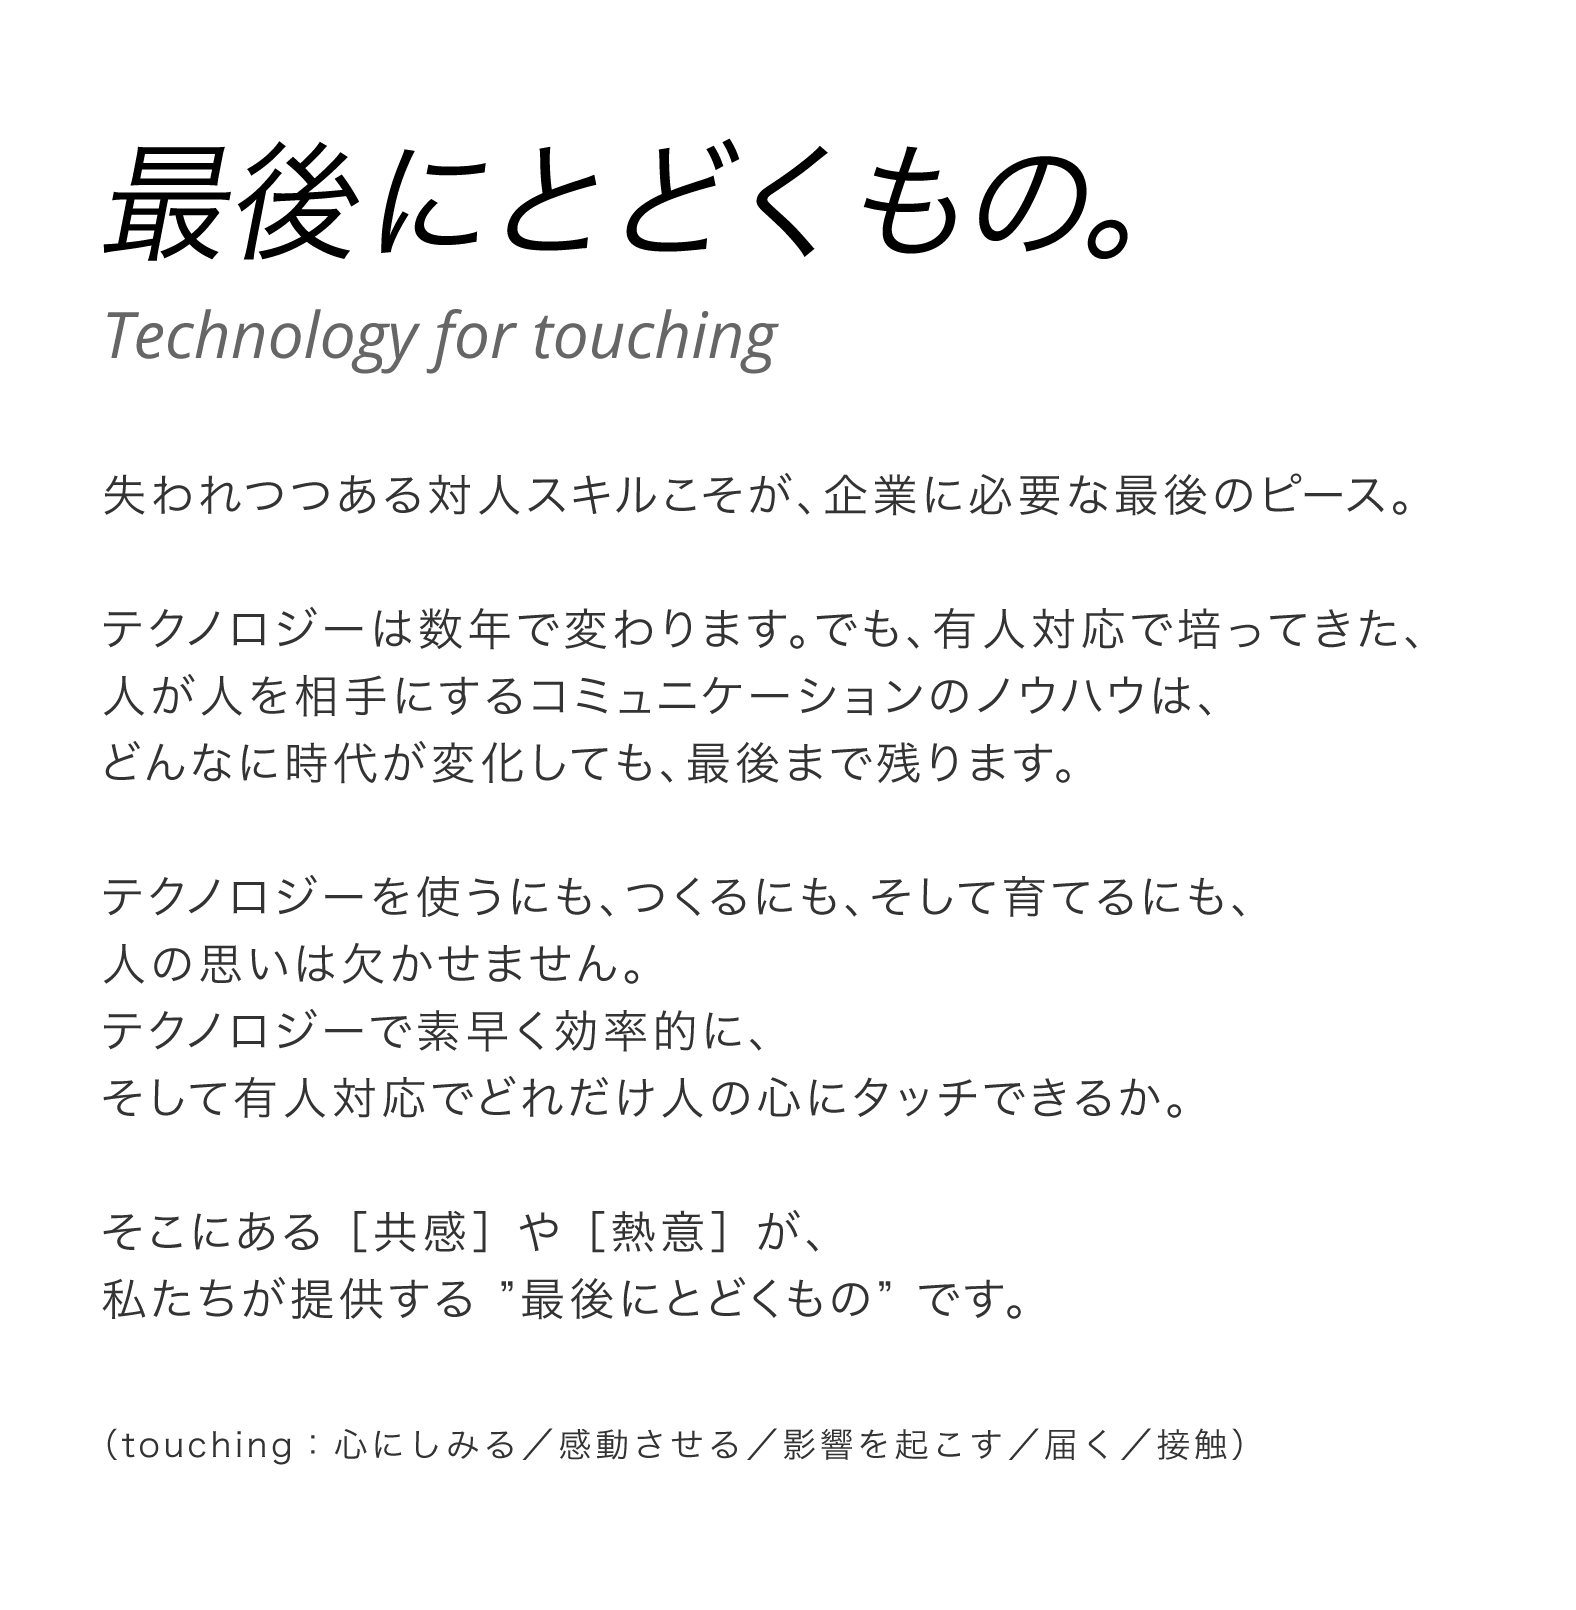 最後に届くもの。TECHNOLOGY FOR TOUCHING